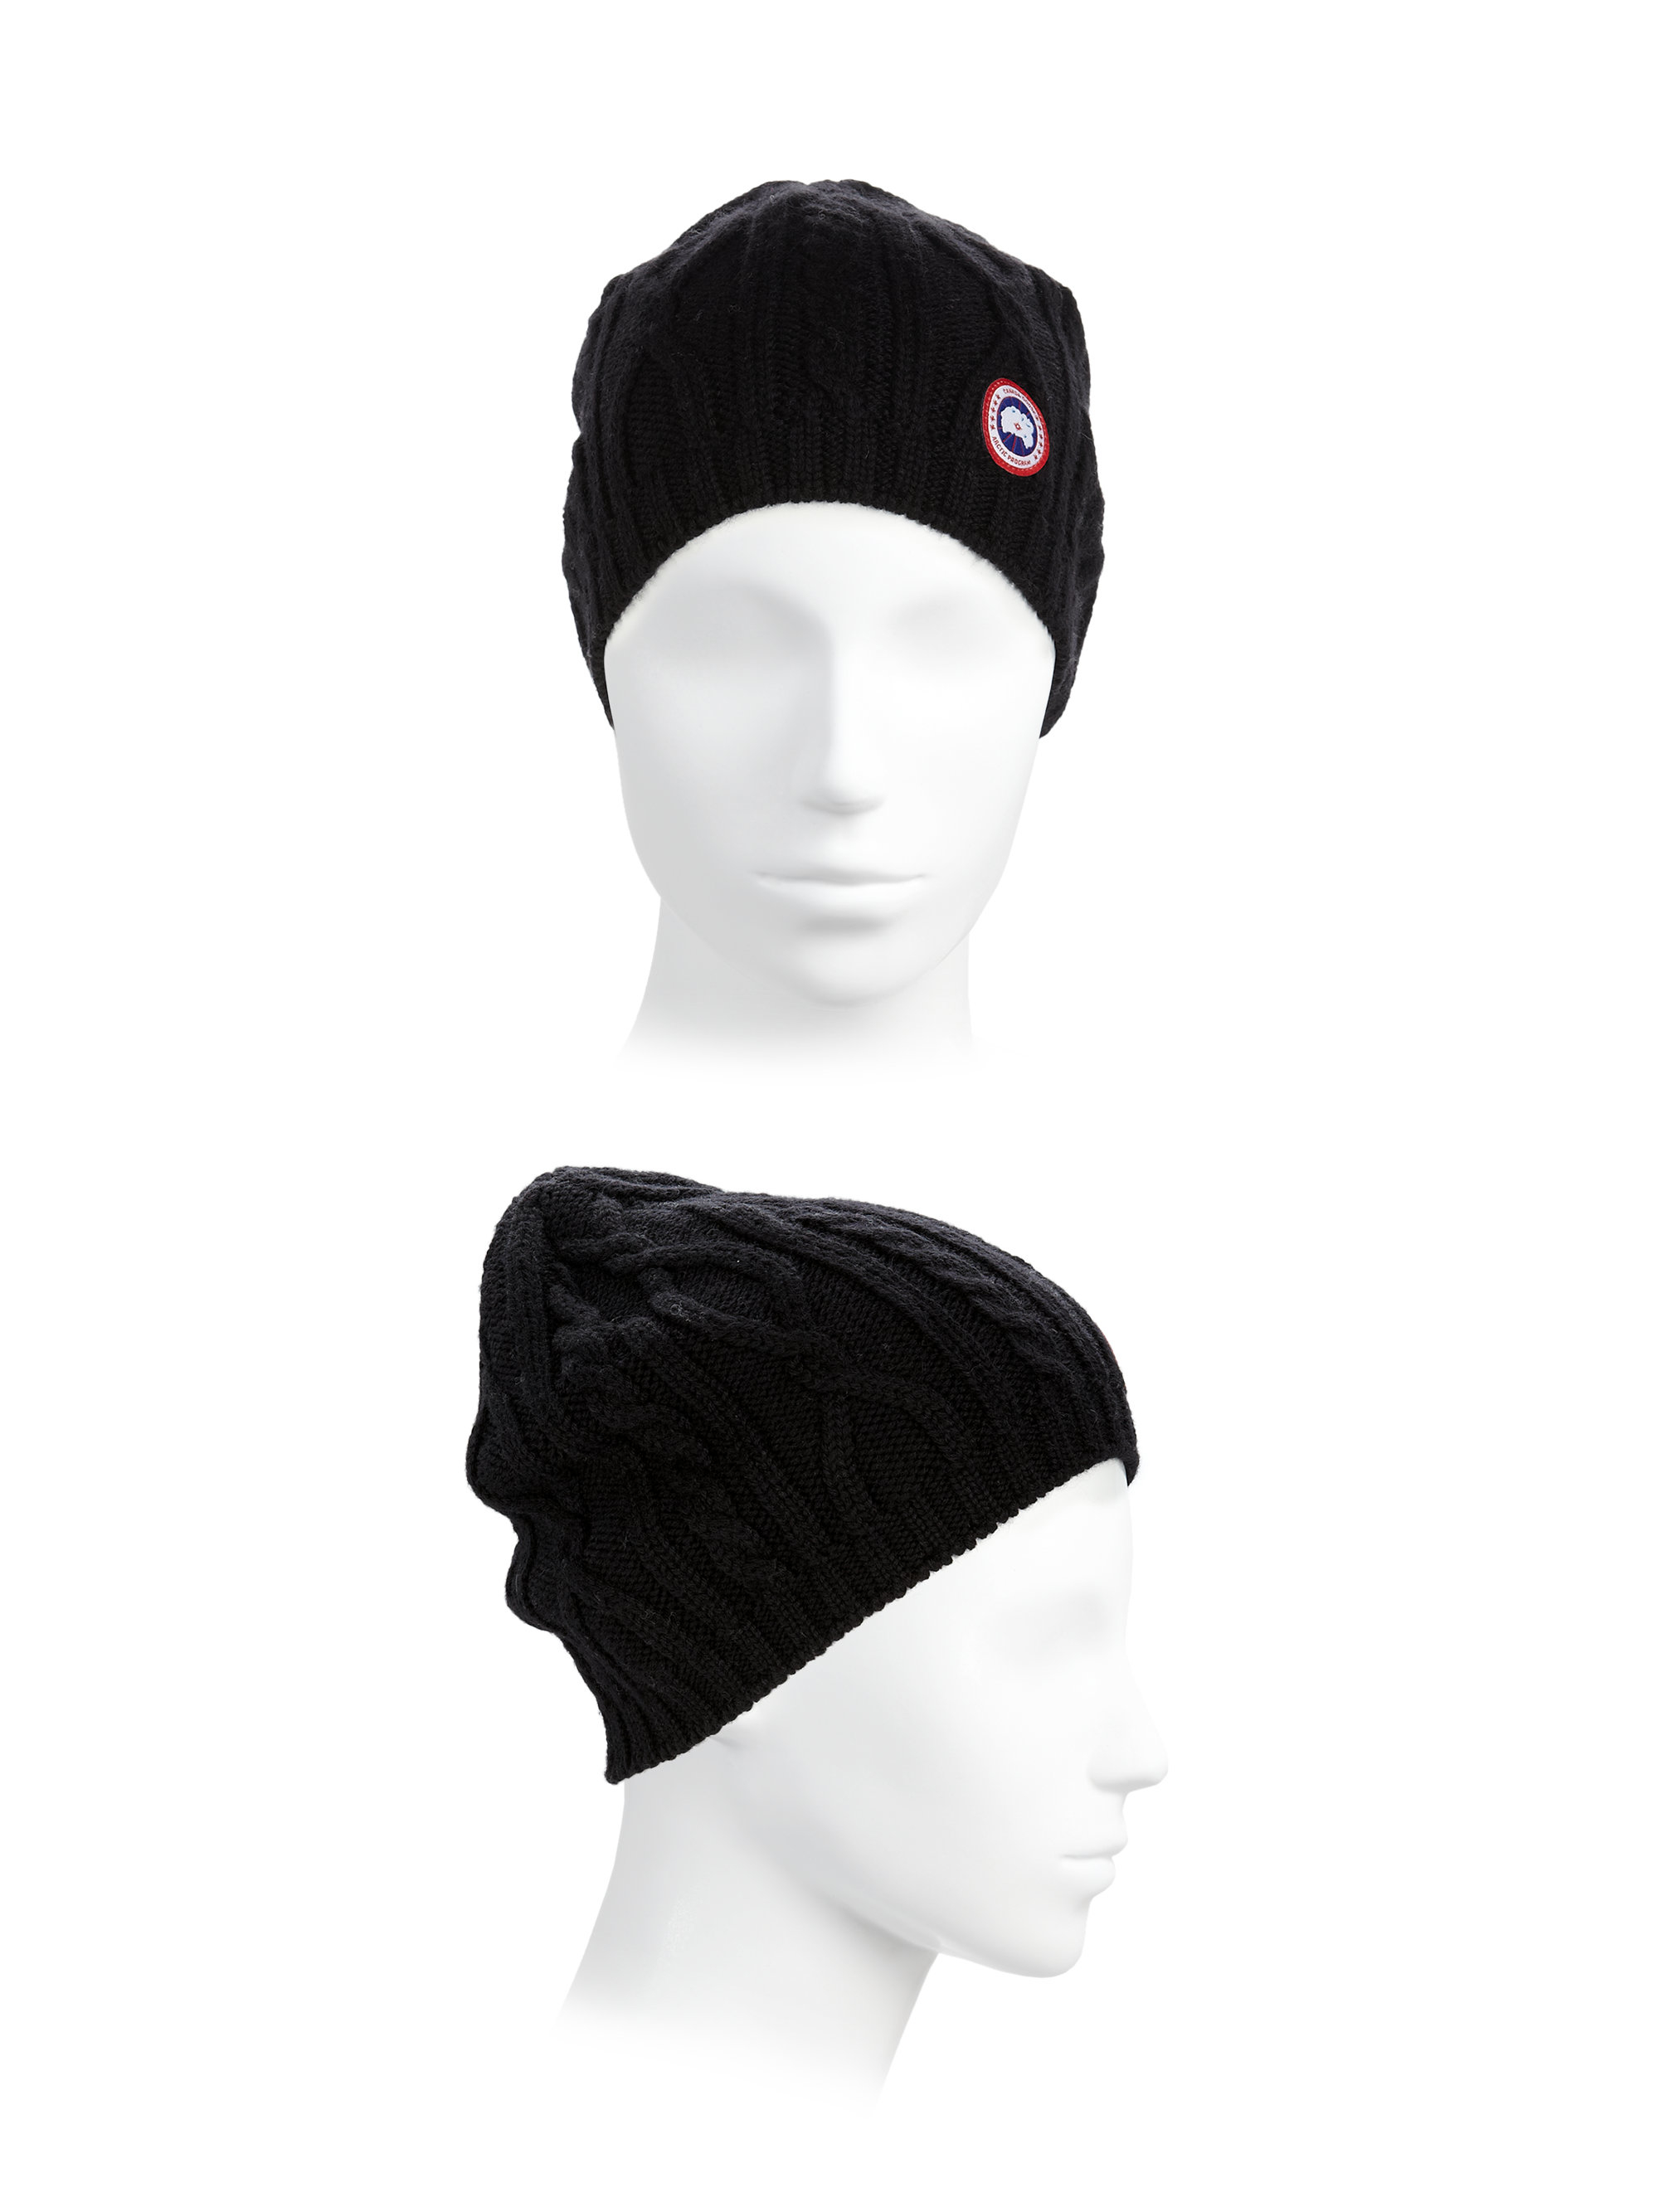 43cfe6cdfaedb Canada Goose Cable-knit Merino Wool Beanie in Black - Lyst